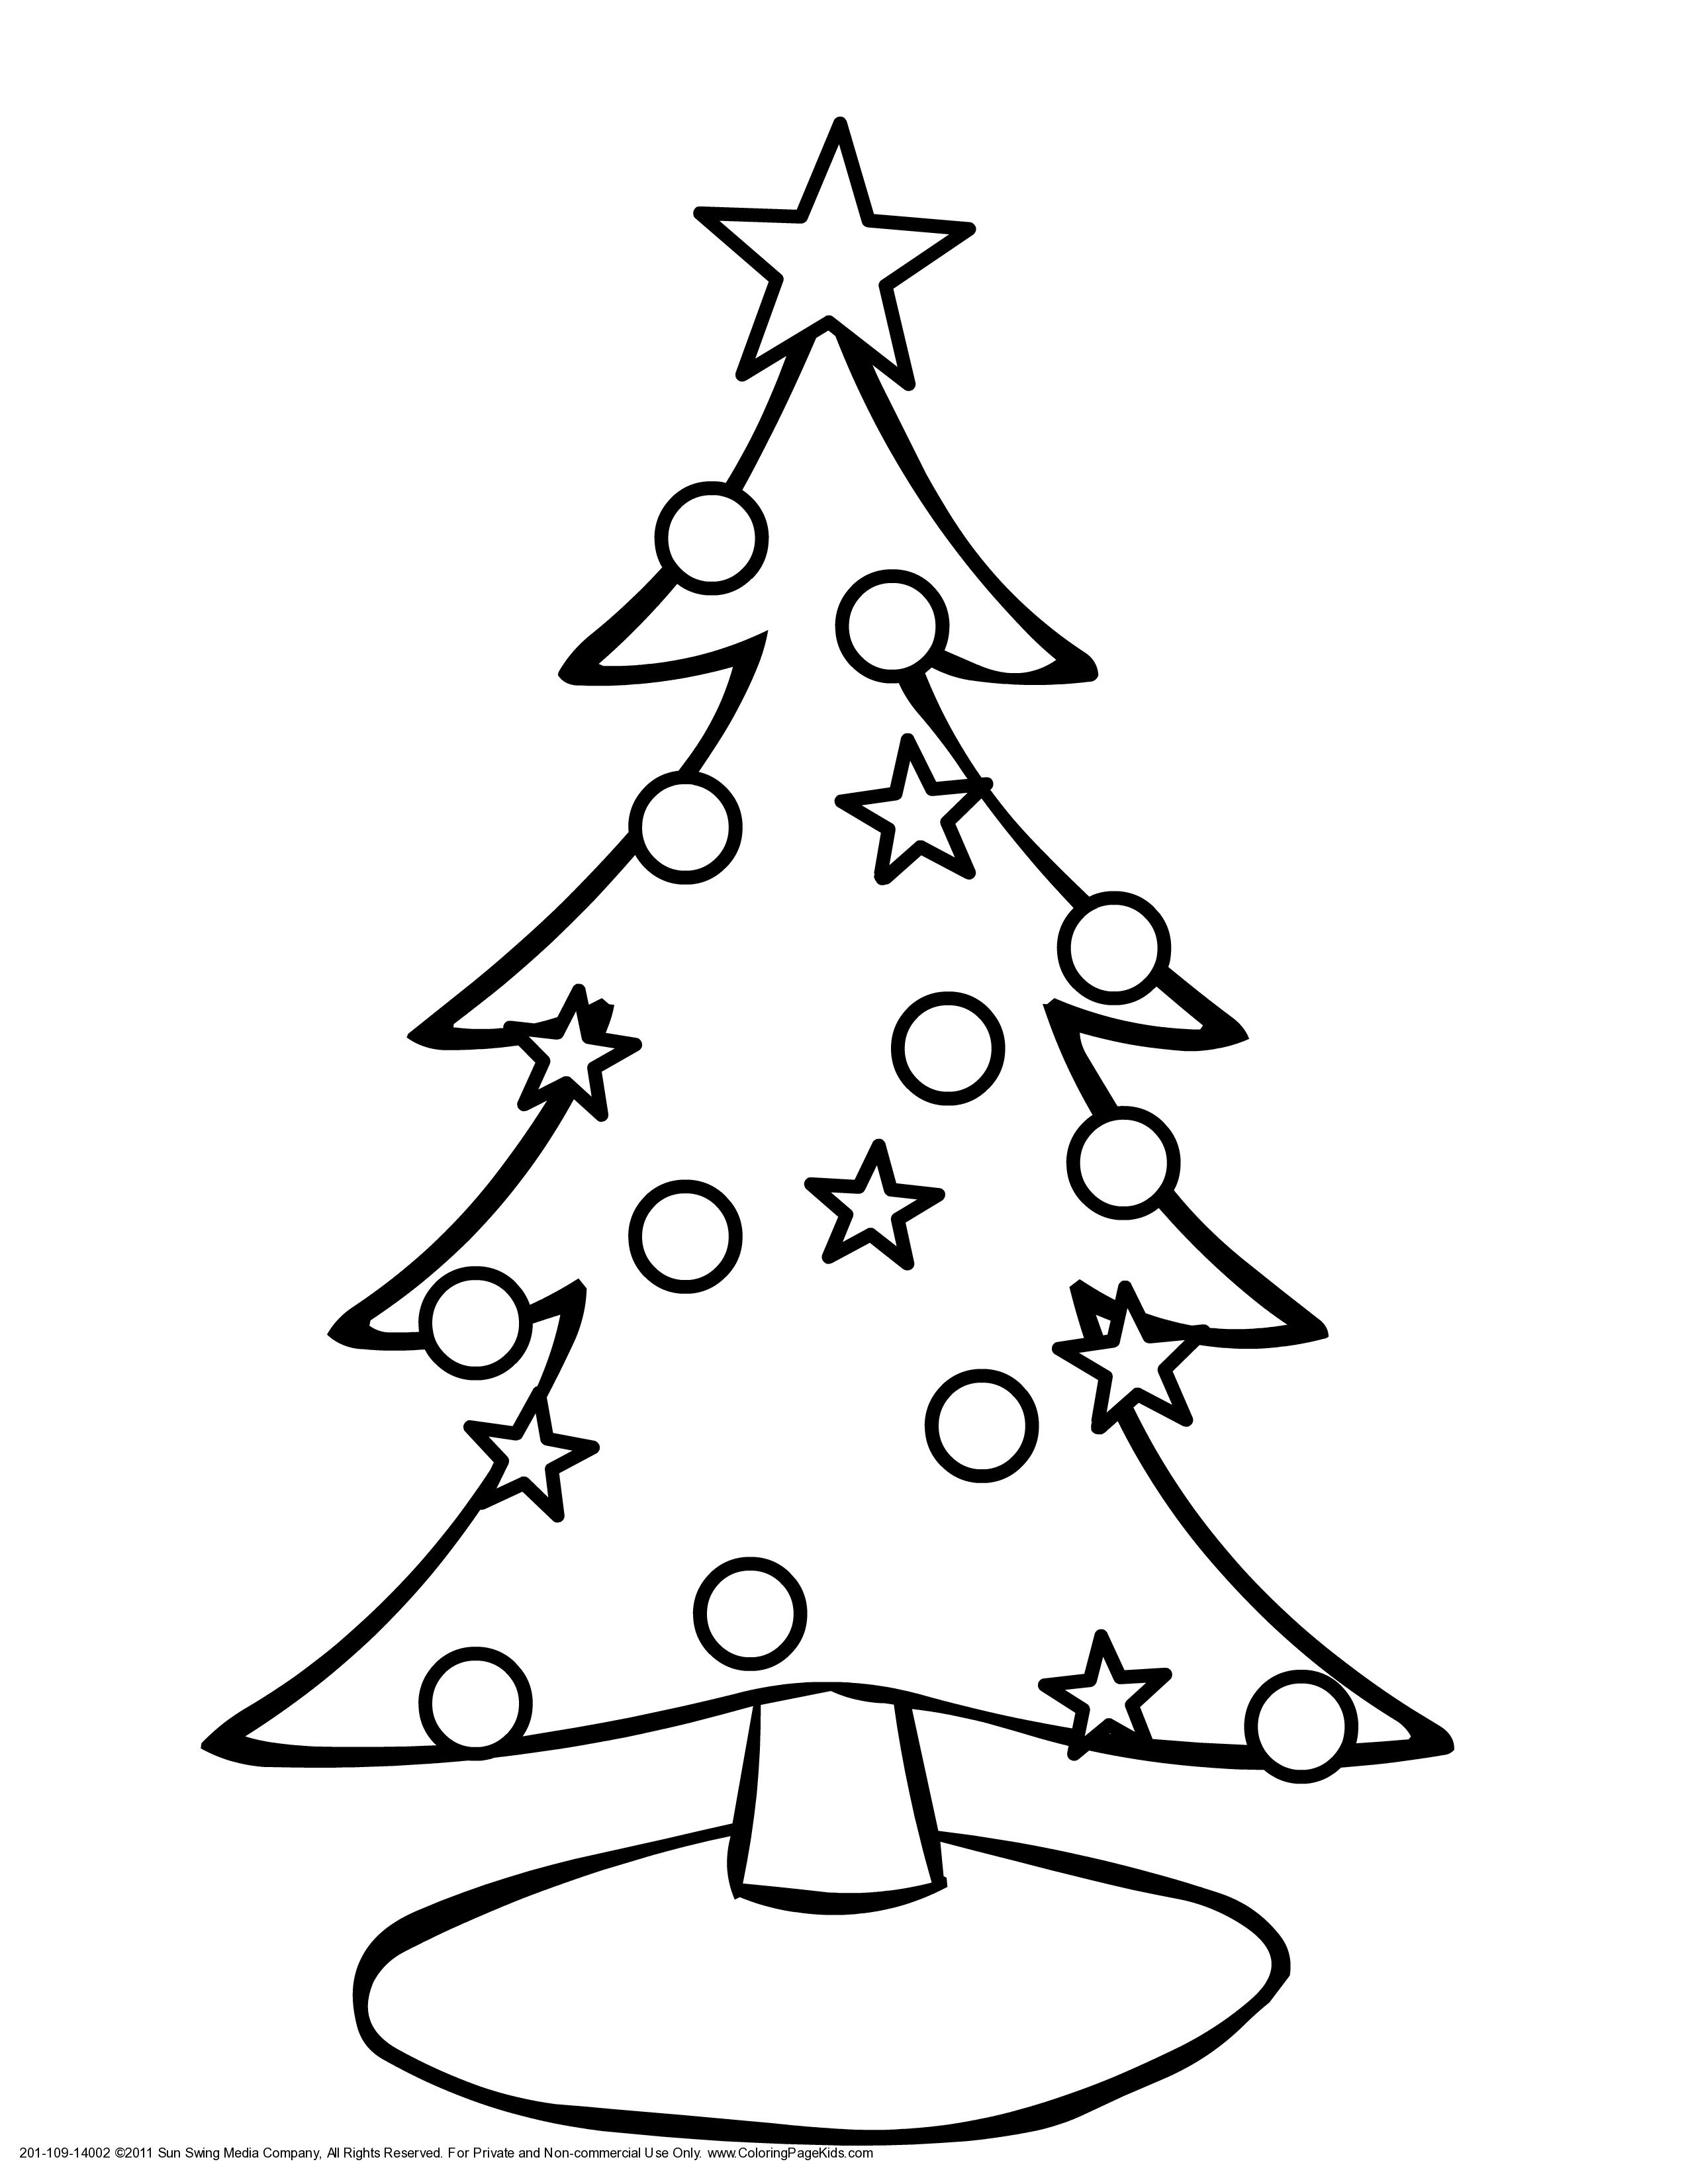 Christmas Coloring Pages Simple With Printable Page For Kids